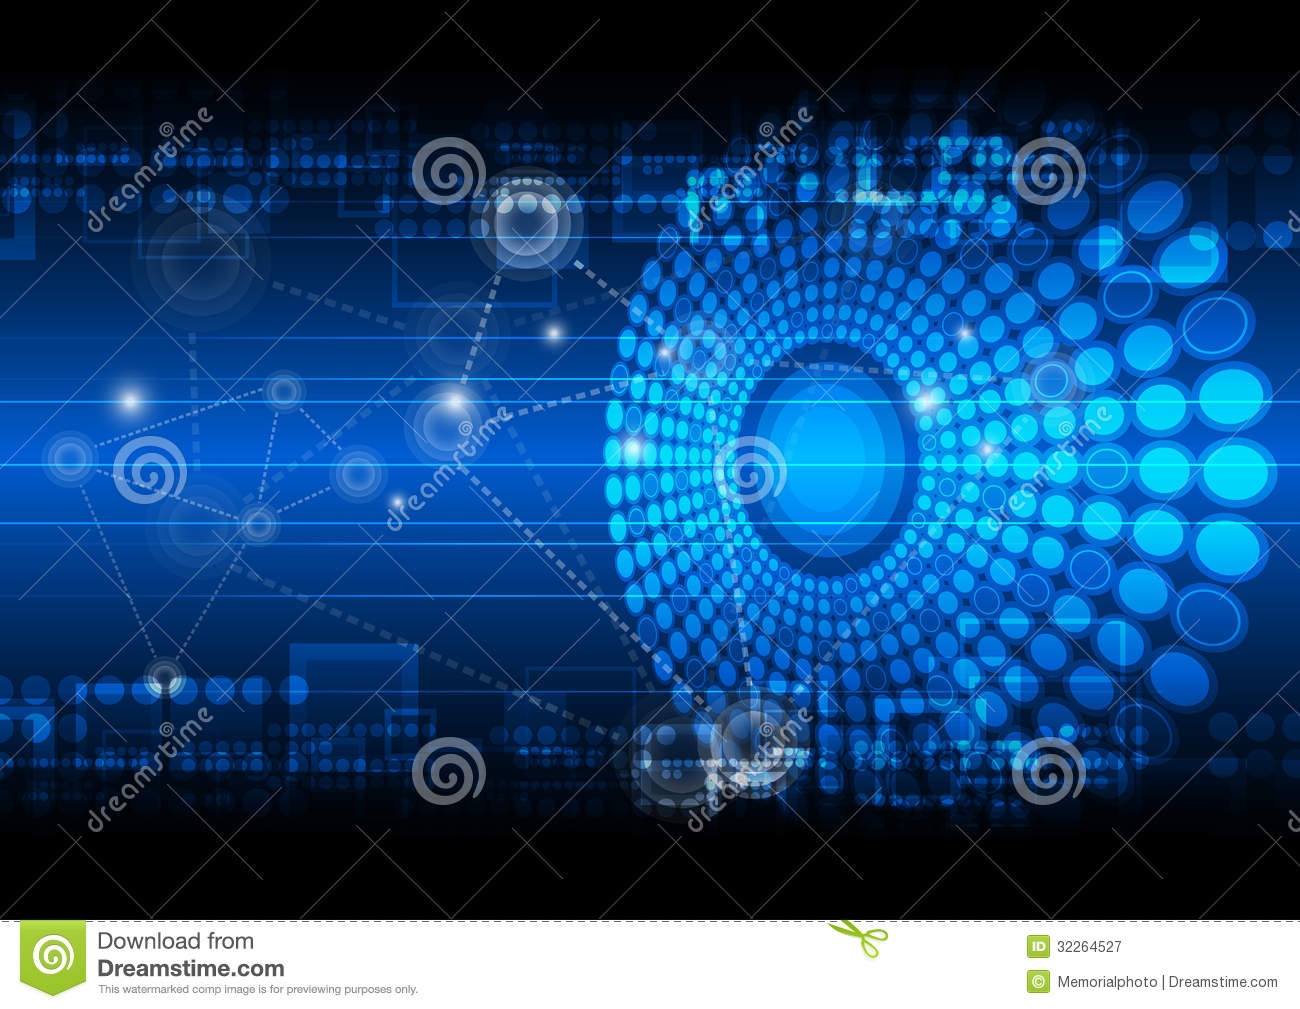 Earl W. Bascom Wallpapers Technology Background Design Network technology background